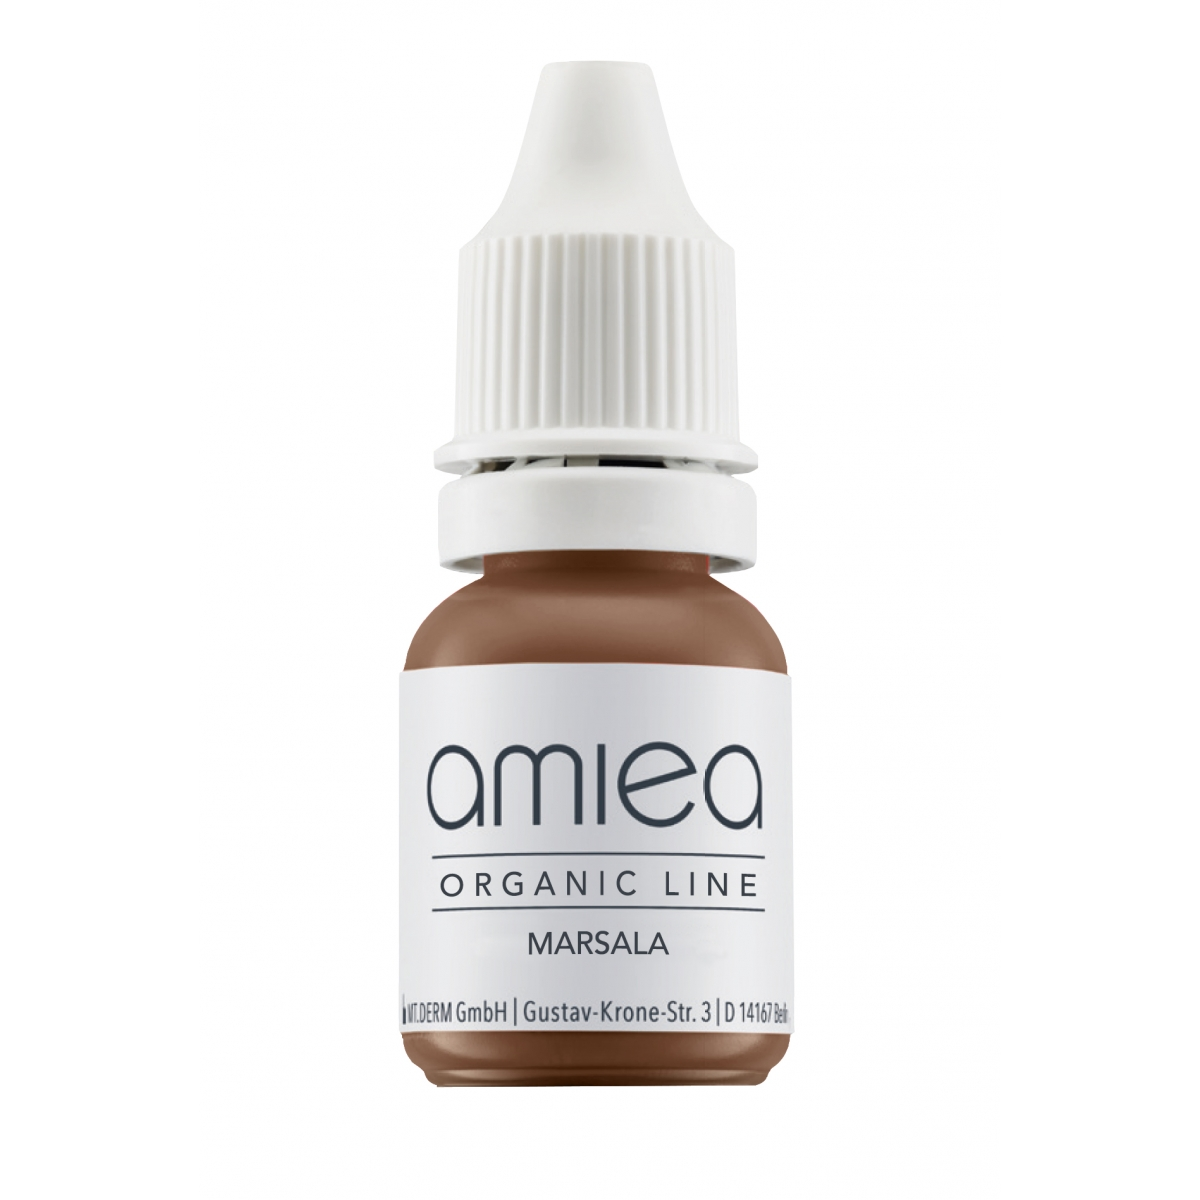 Organicline (10 ml) - PIGMENTS AMIEA ORGANICLINE MARSALA, Flacon 10 ml